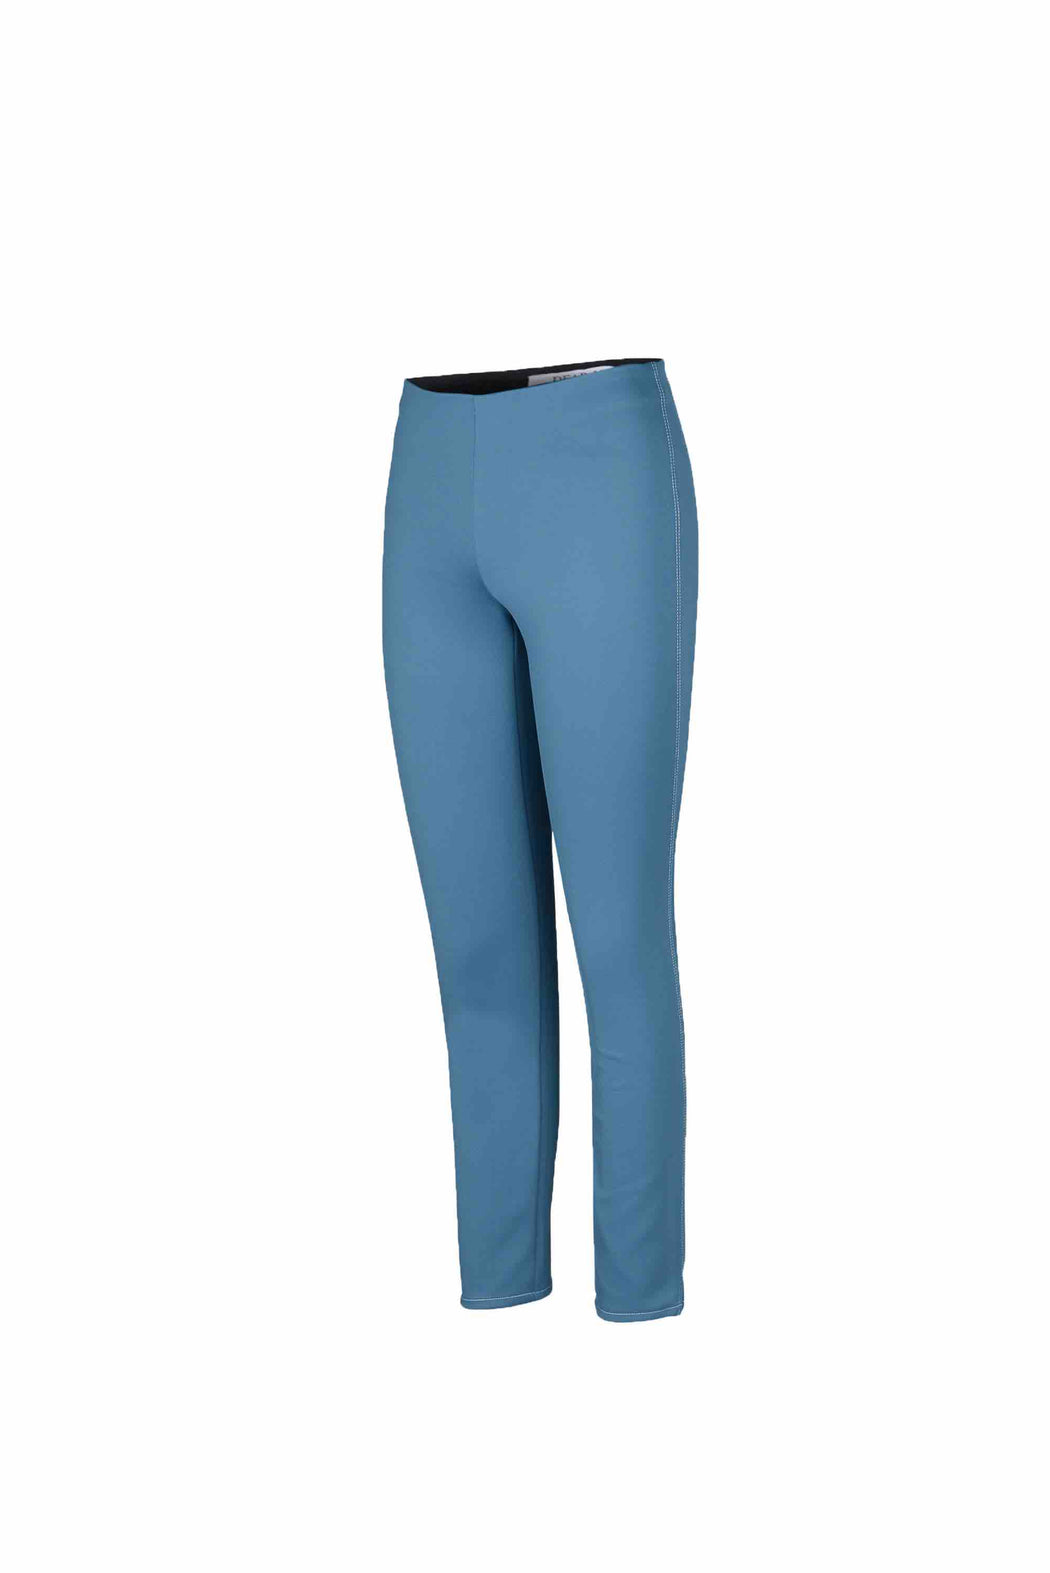 Side view of Women Super Stretchy Leggings in Denim Blue/ Green